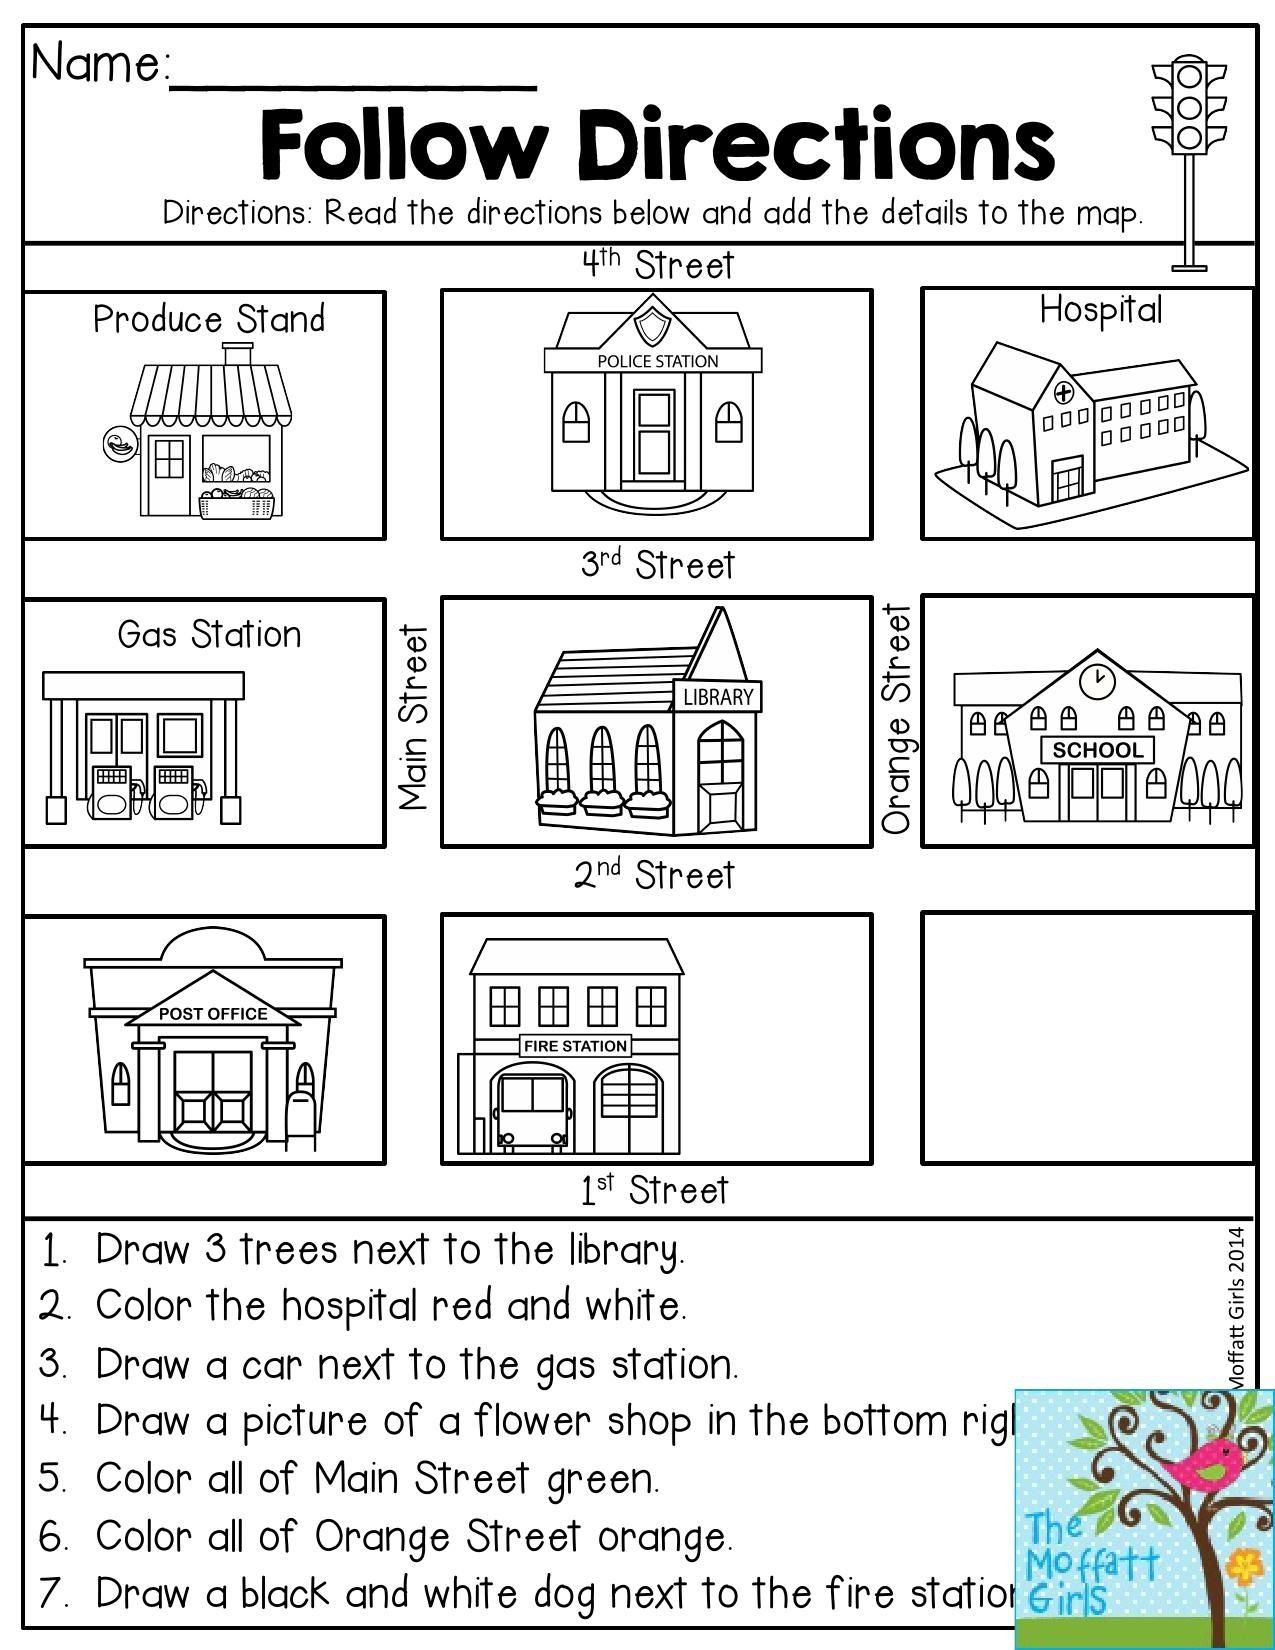 Free Worksheet For Teaching Dictionary Skills   Printable Worksheets and  Activities for Teachers [ 1650 x 1275 Pixel ]